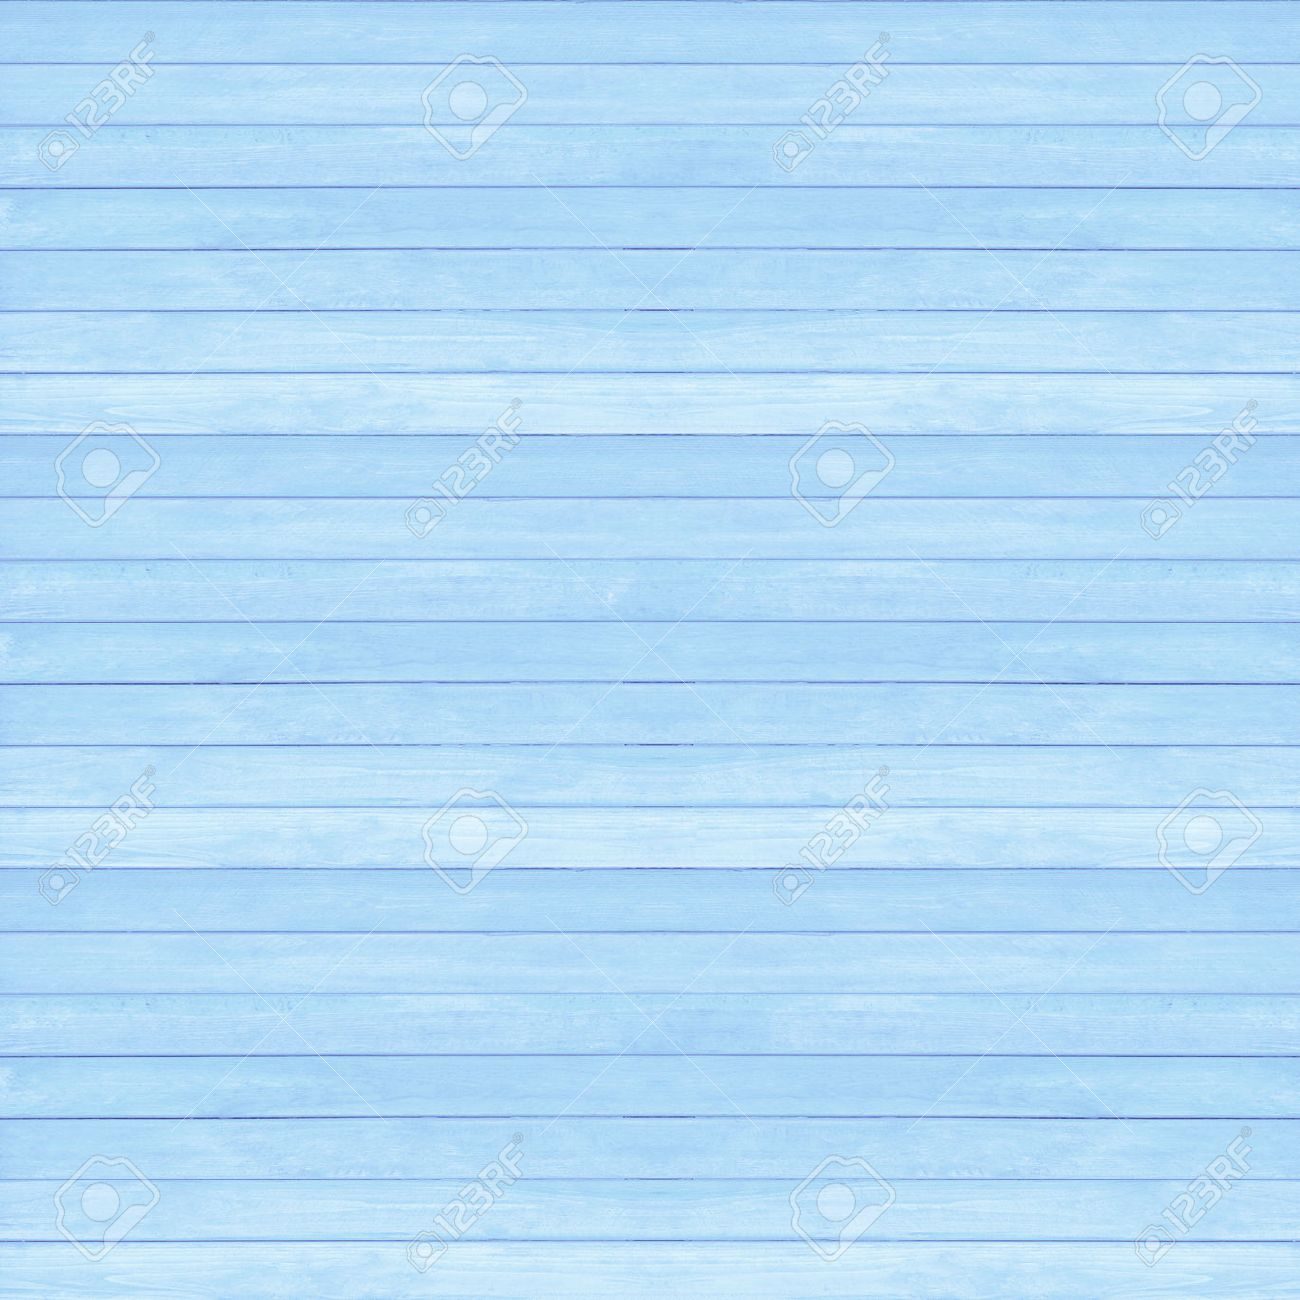 Pastel Blue Part - 43: Stock Photo - Wooden Wall Texture Background, Blue Pastel Color